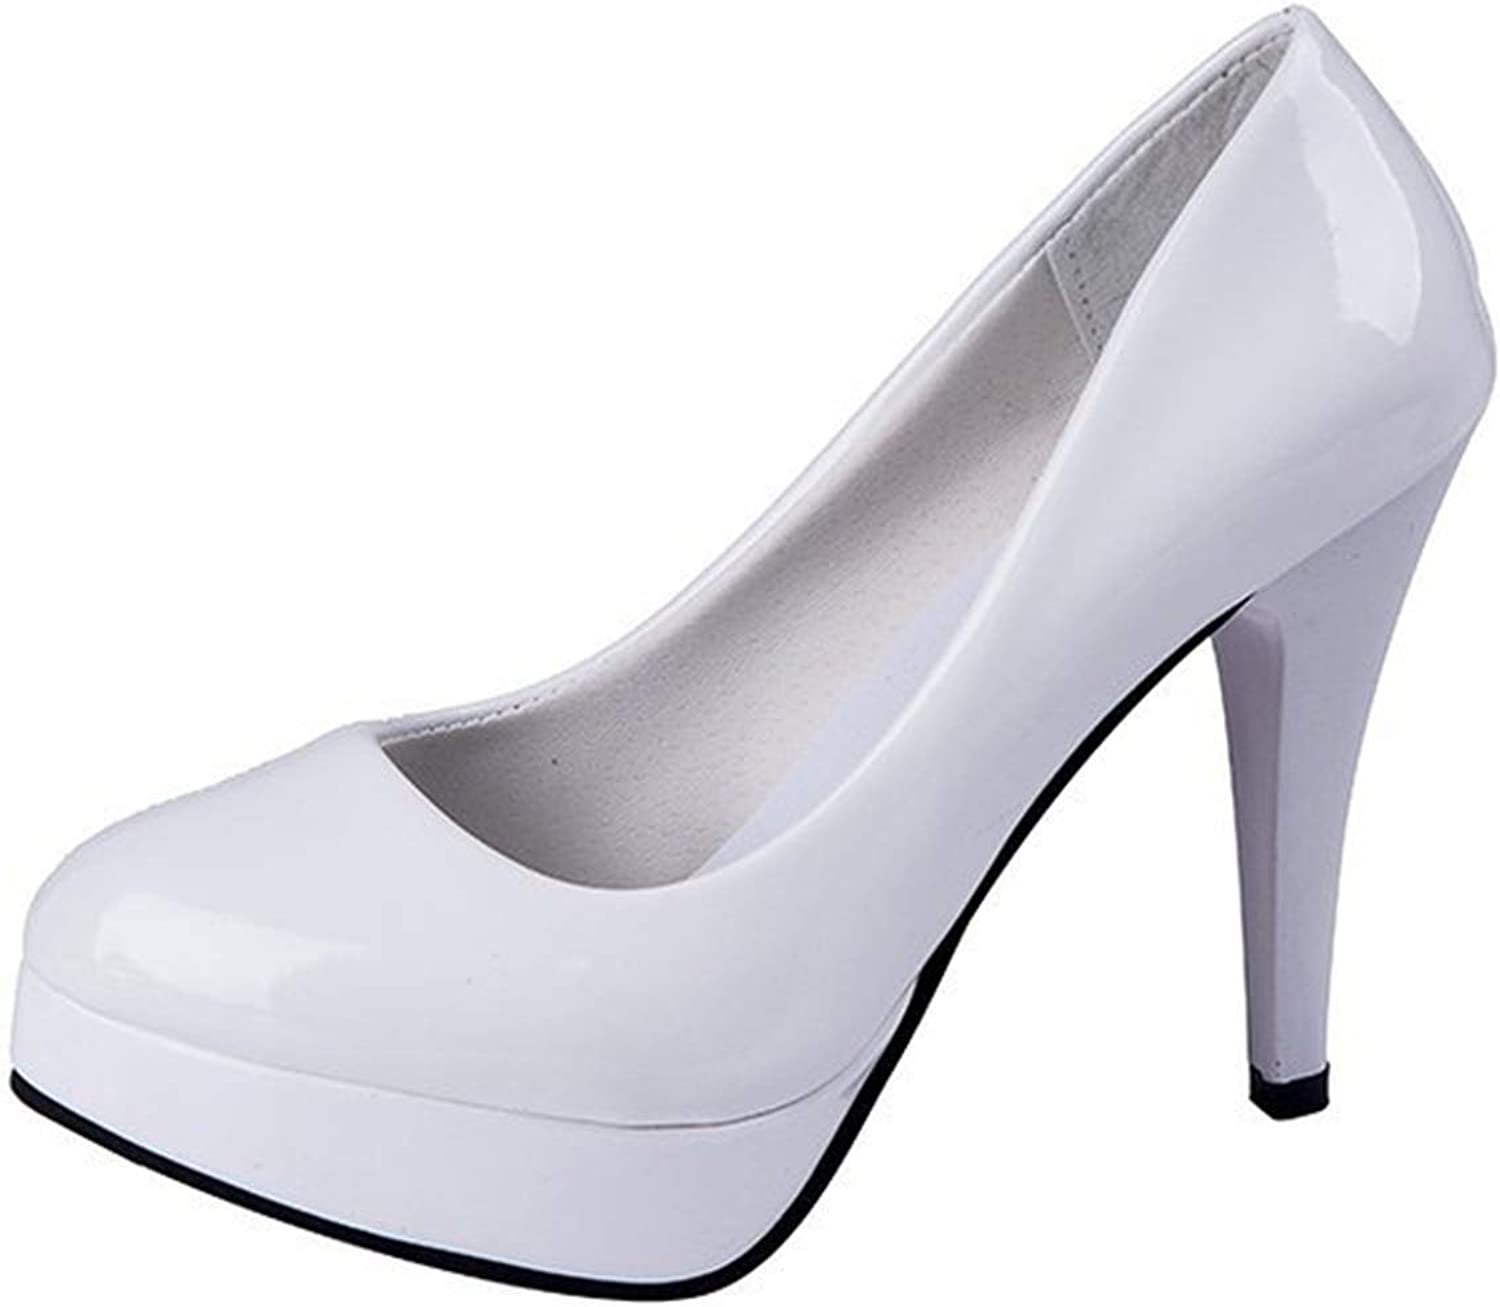 Women Platform Pumps Spring Summer Patent Leather Thin High Heels Office Career shoes